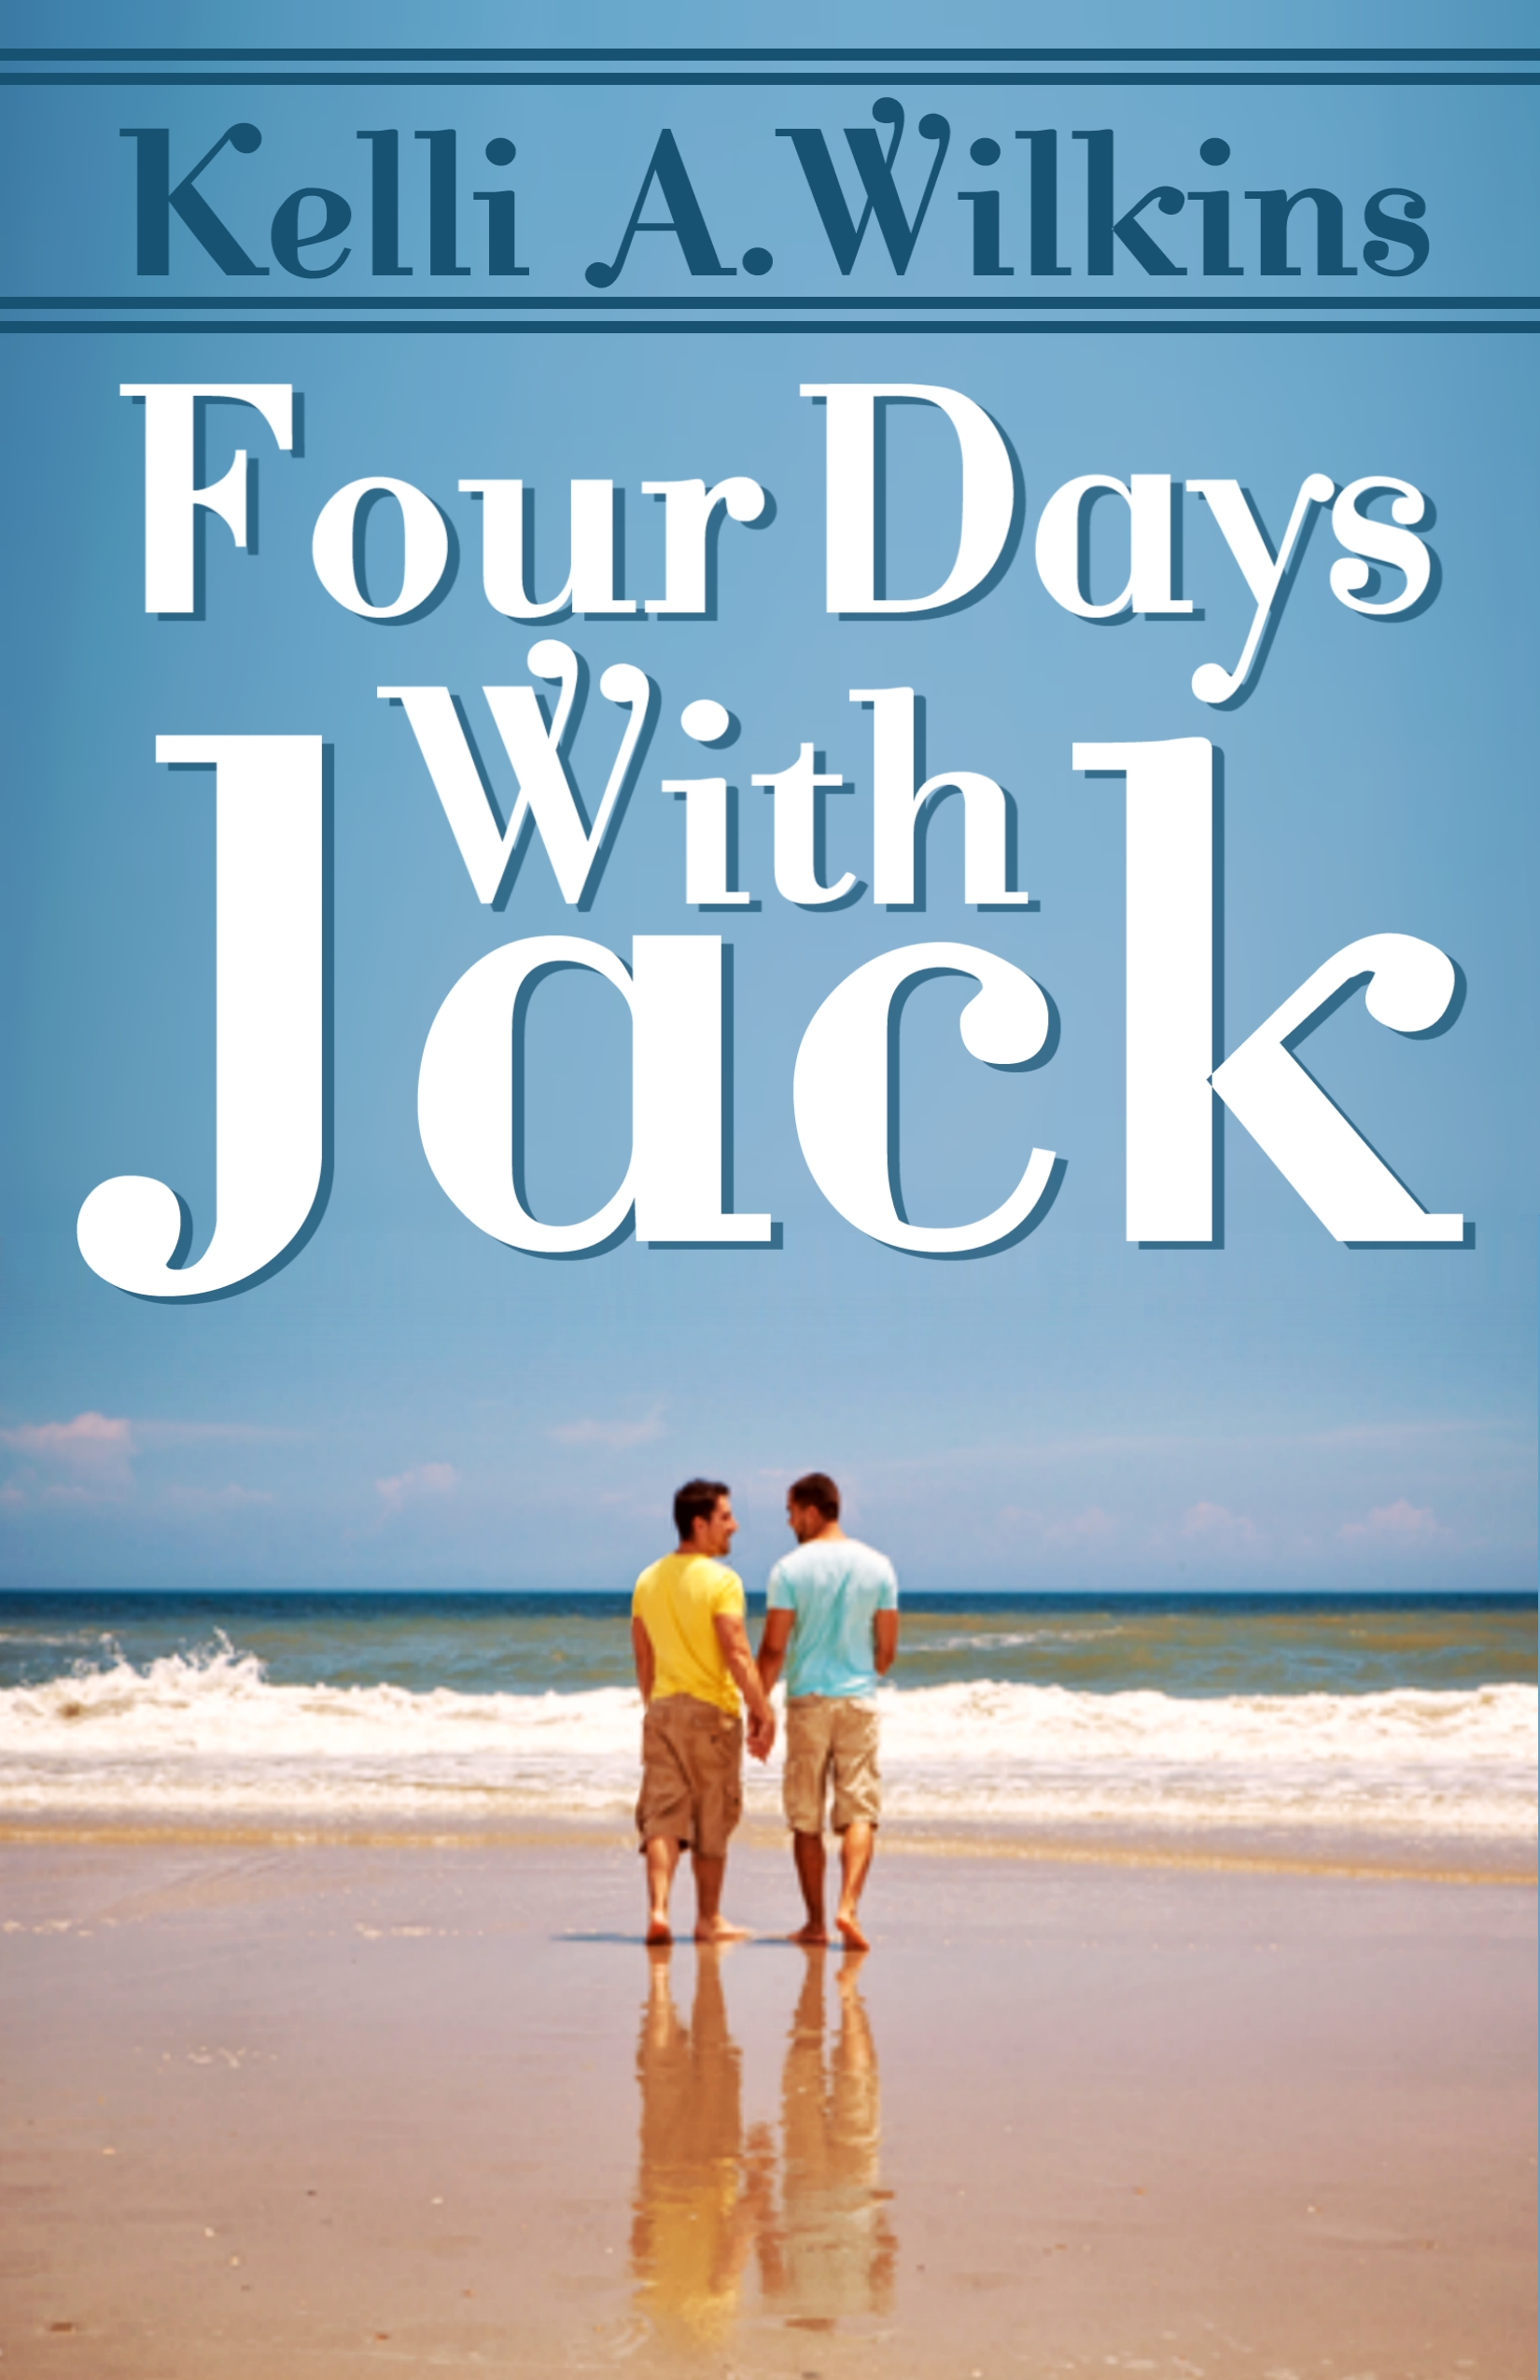 Guest Post: Four Days with Jack by Kelli A. Wilkins